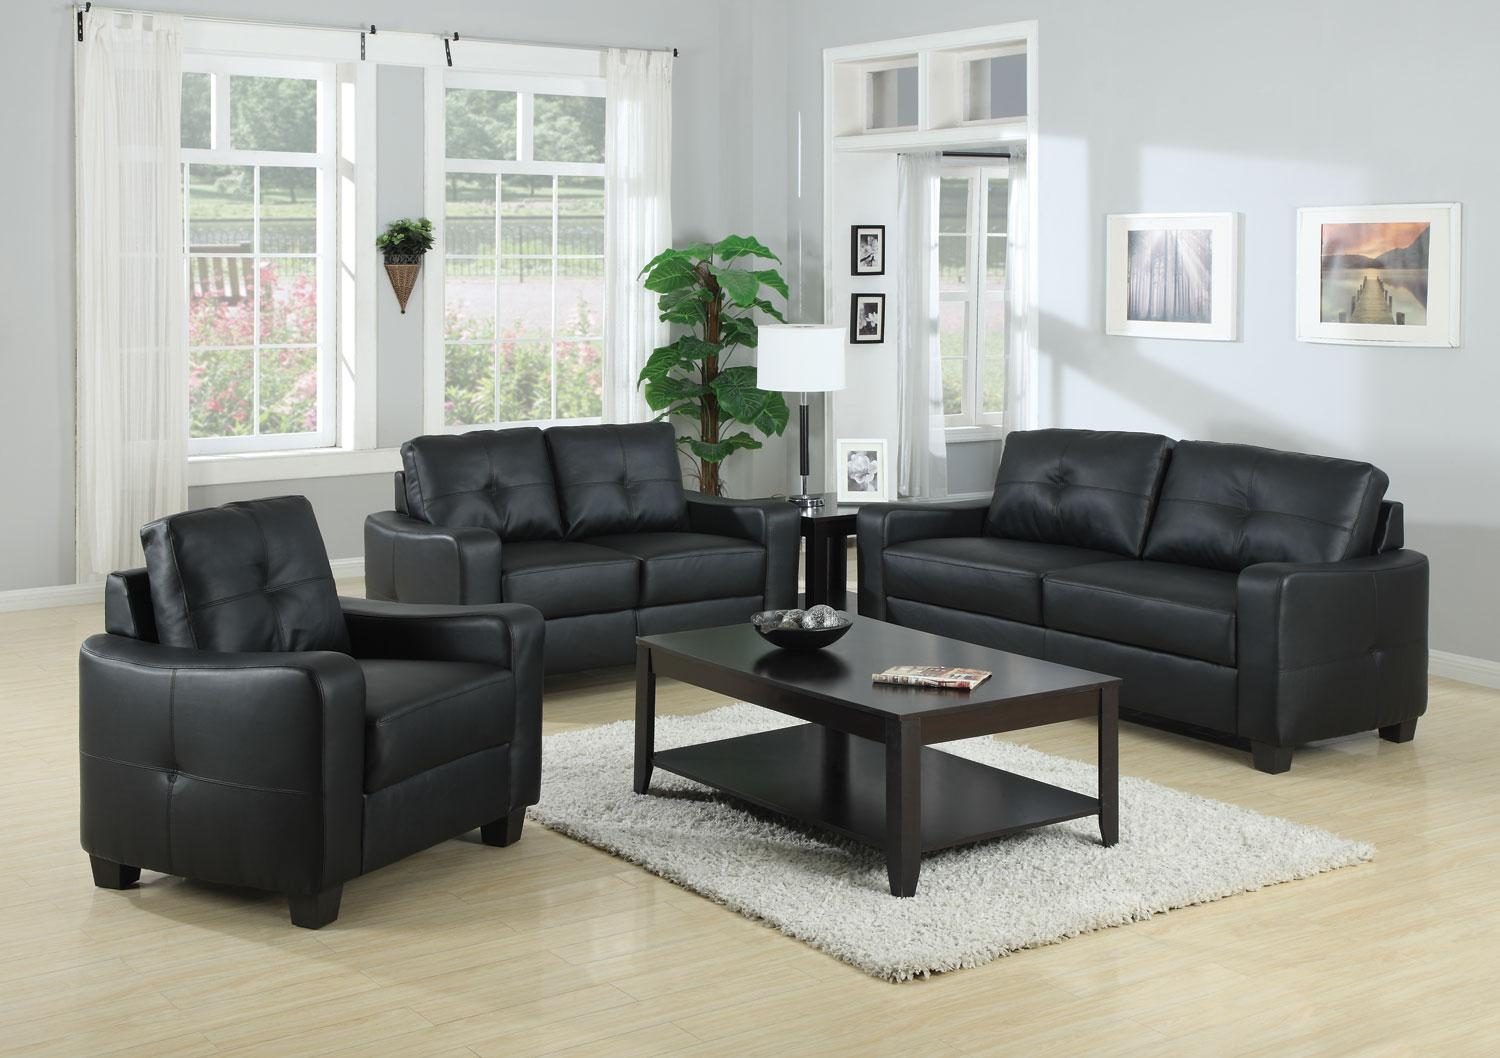 Dasani Black Leather Sofa|Leather Living Room Furniture